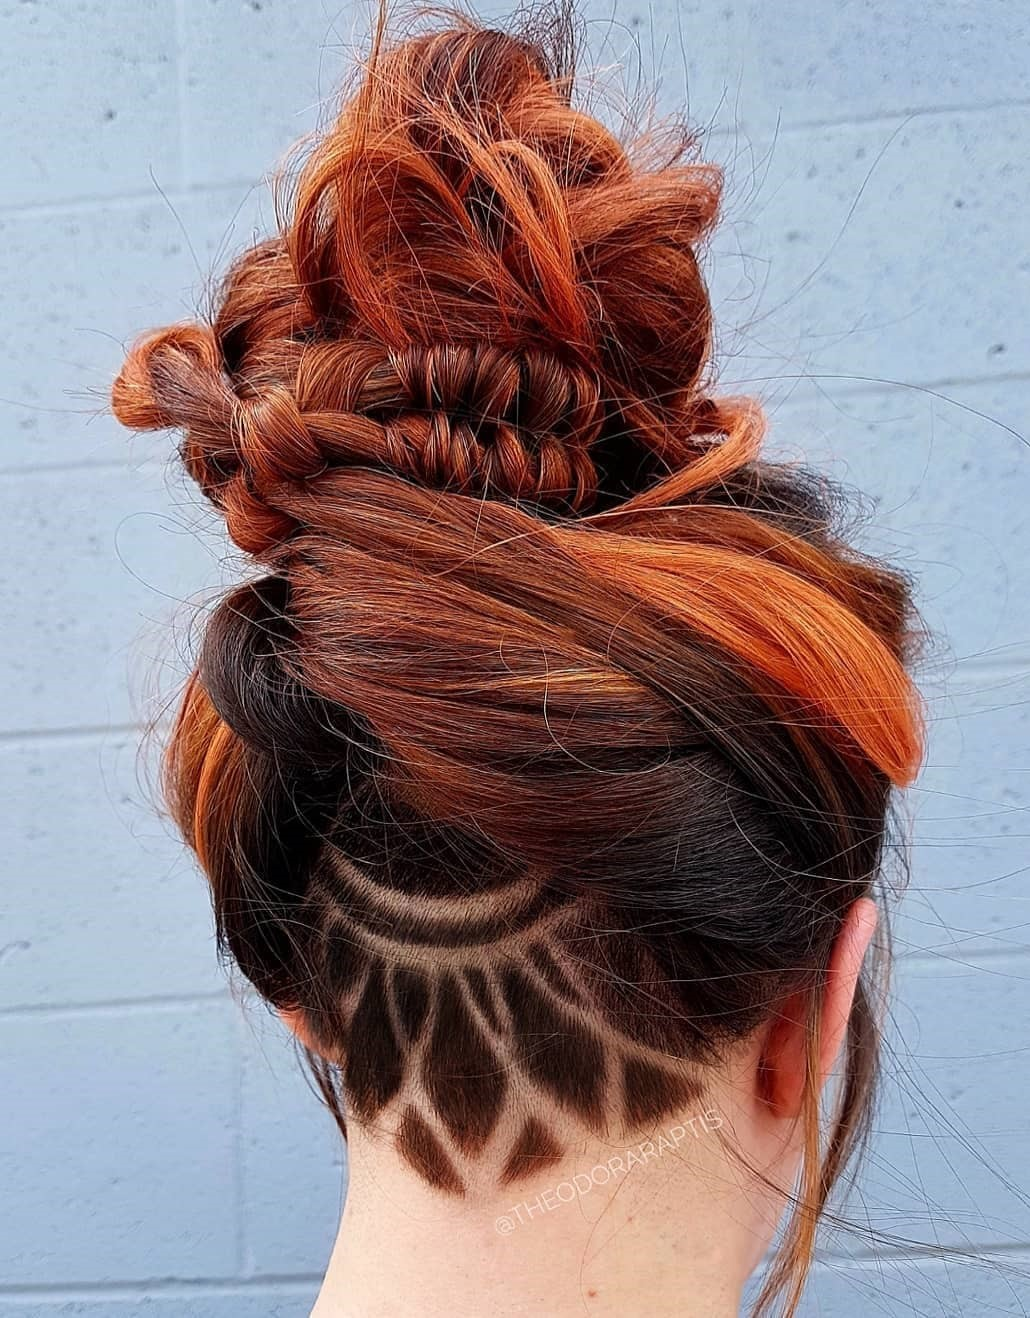 This is a warm and romantic take on the long undercut just in time for the lover's holiday. 40 Hot Undercuts For Women That Are Calling Your Name Hair Adviser